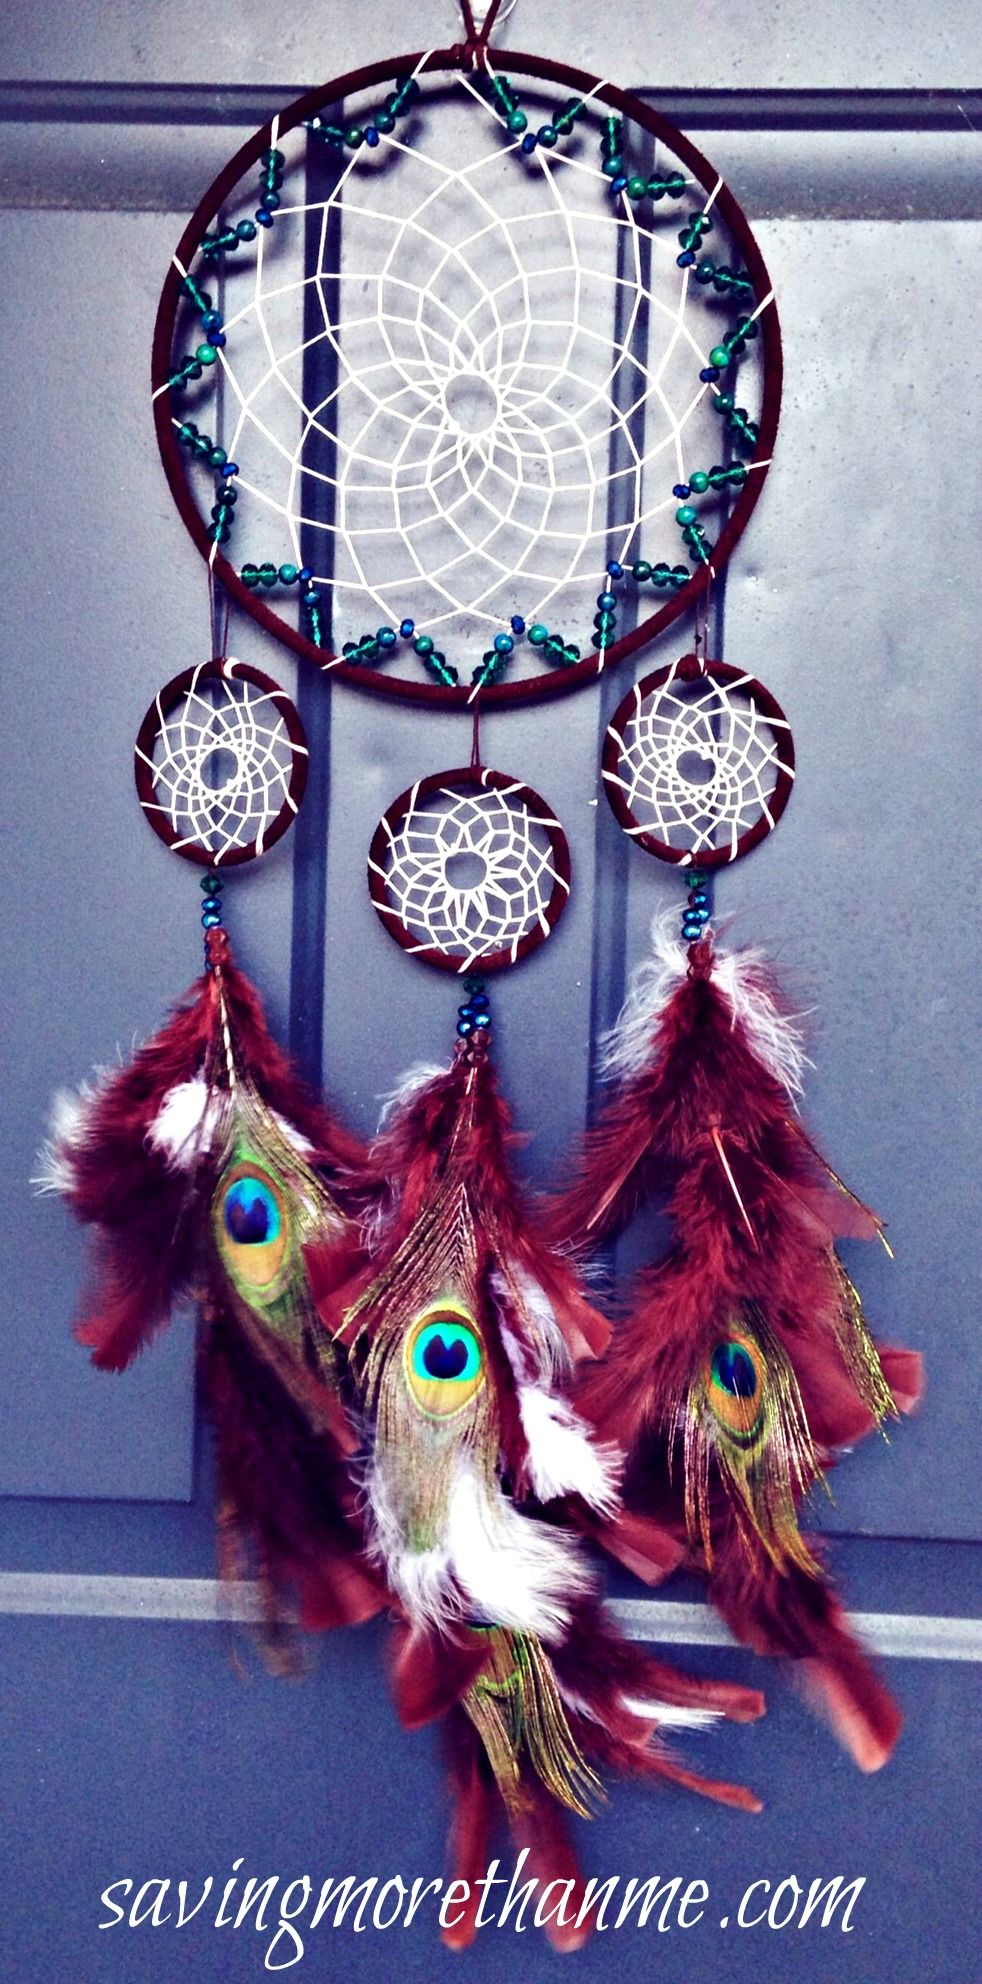 origin of dream catcher